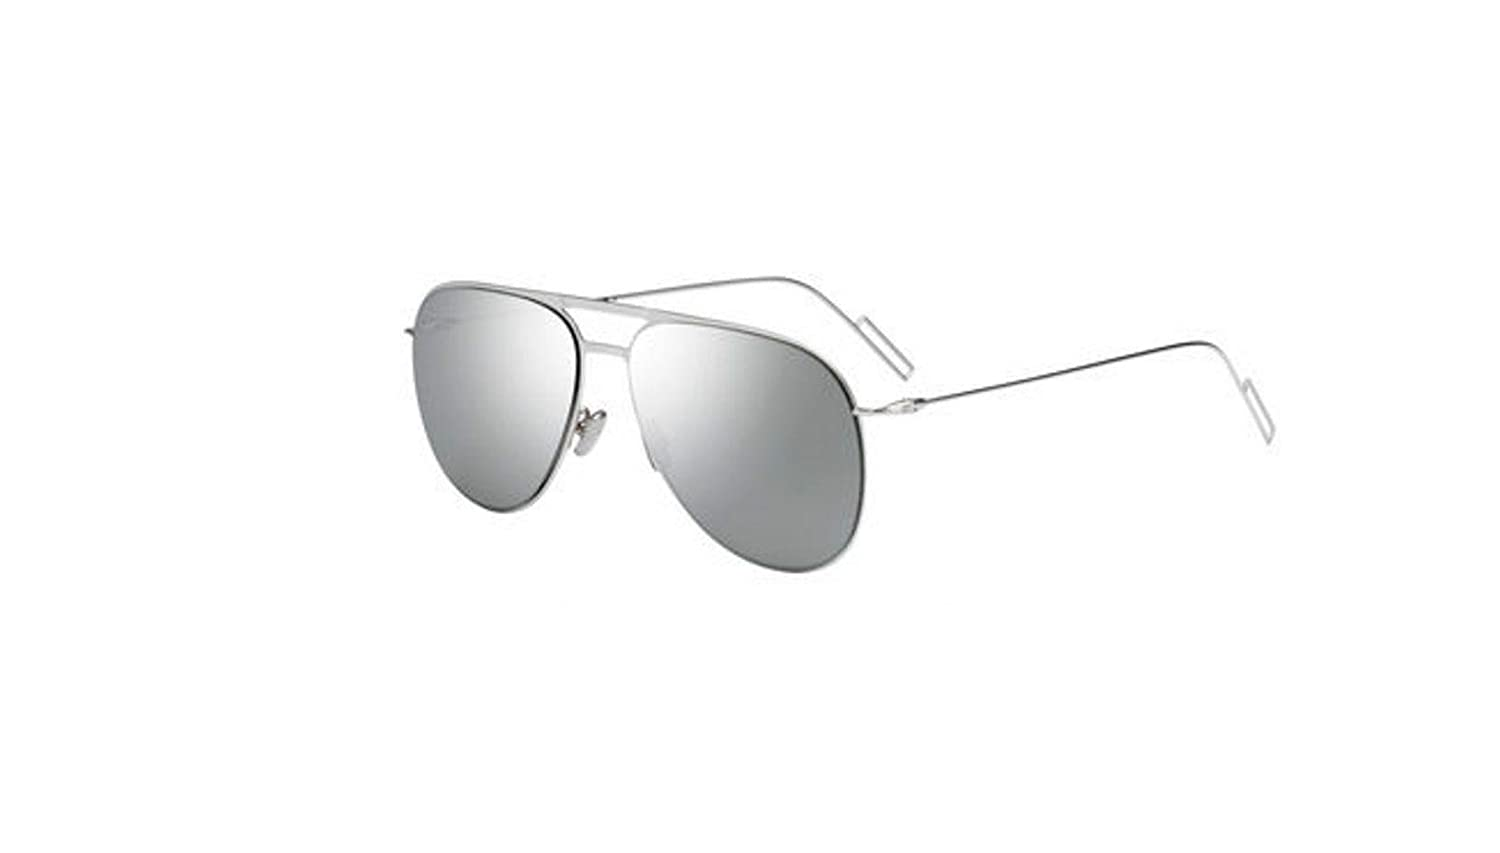 1b466e43778e4 Amazon.com  New Christian Dior Homme 0205S 0010 Palladium SS Sunglasses   Clothing